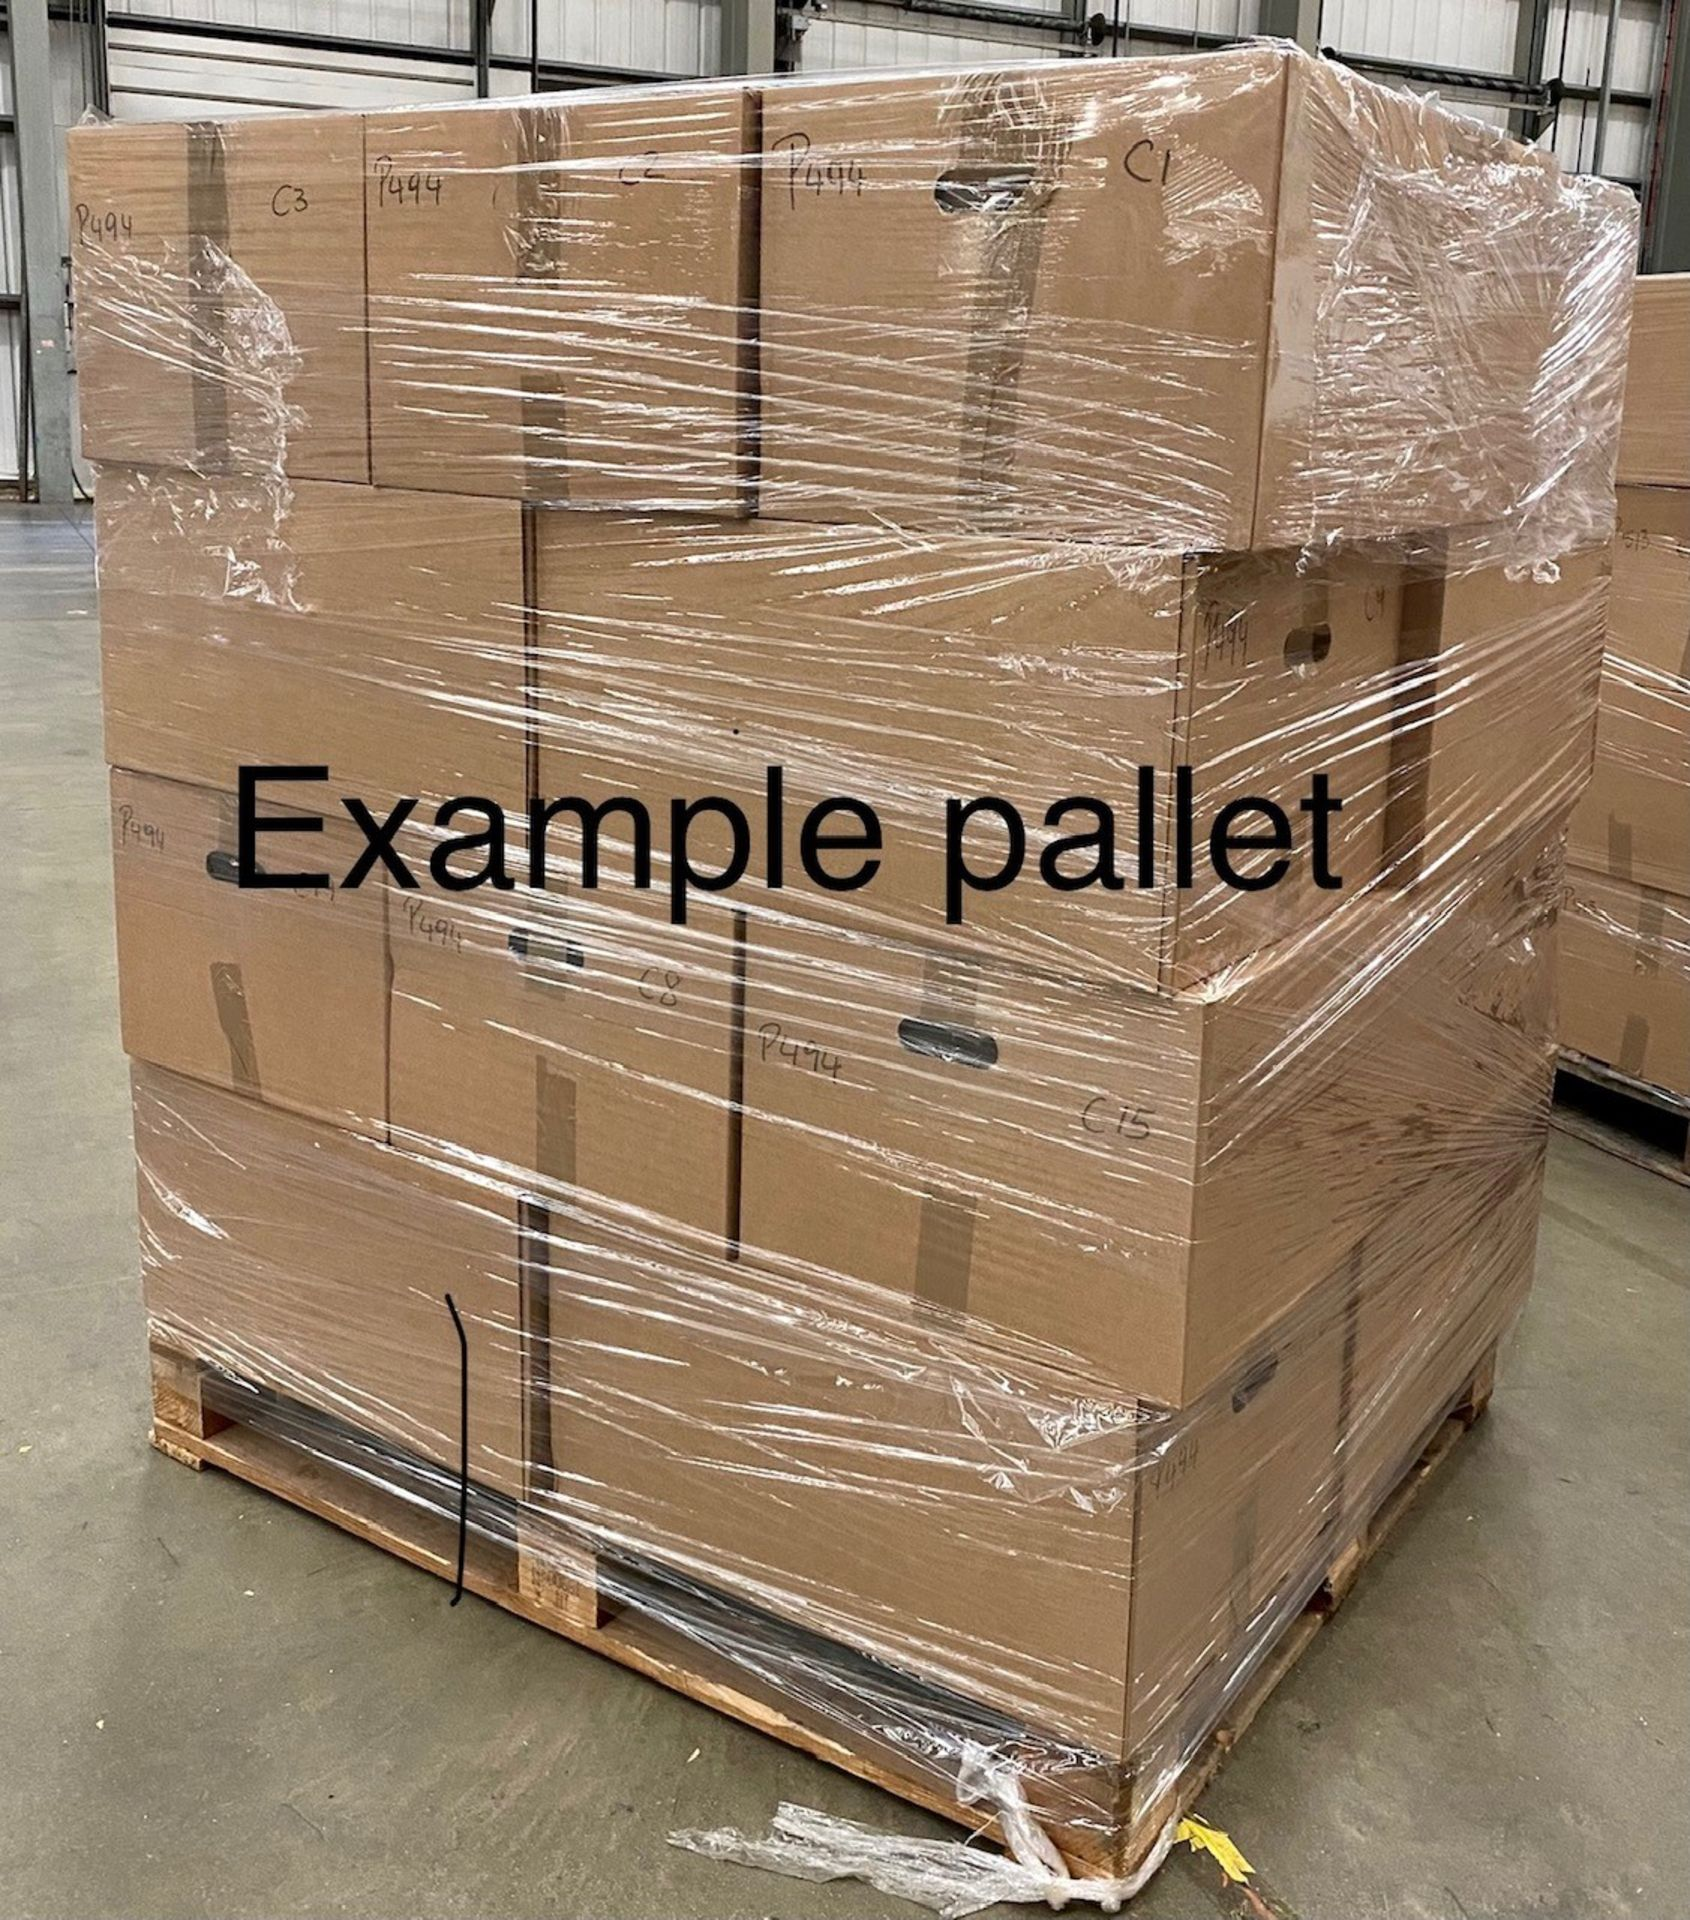 1 x mixed pallet = 400 items of Grade A M&S Womenswear Clothing. Total RRP £7924.50 - Image 13 of 13